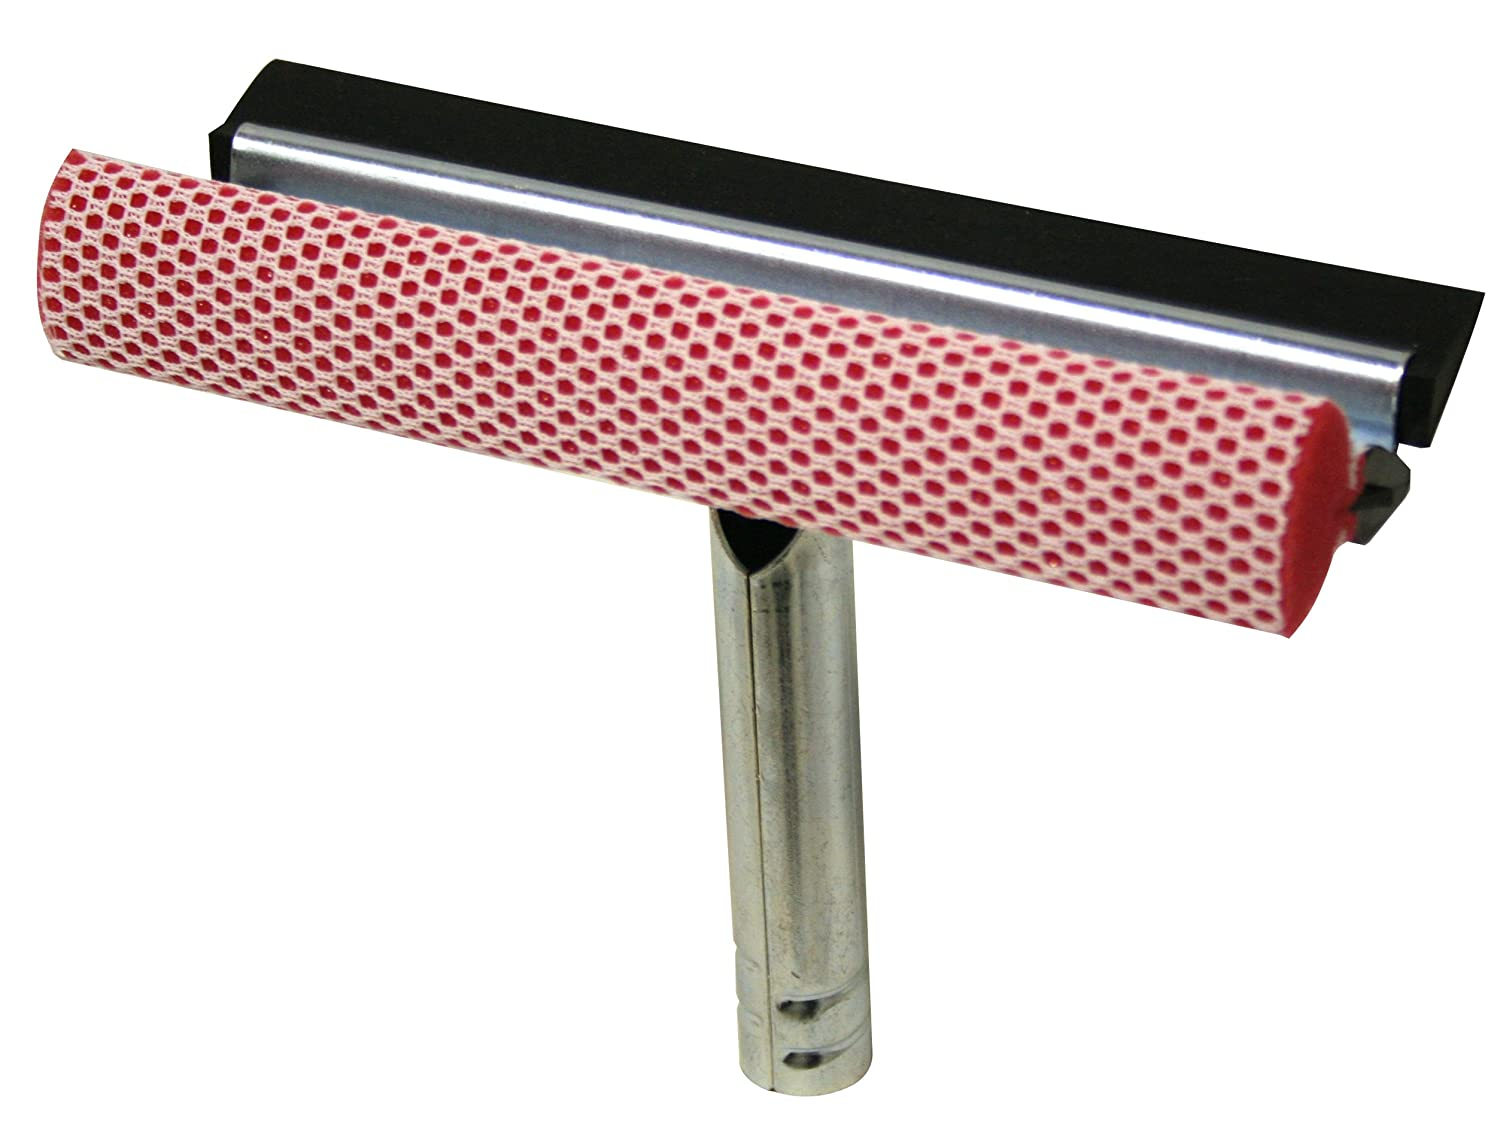 Mallory 808NY 8' Squeegee Head- Assorted colors red and blue